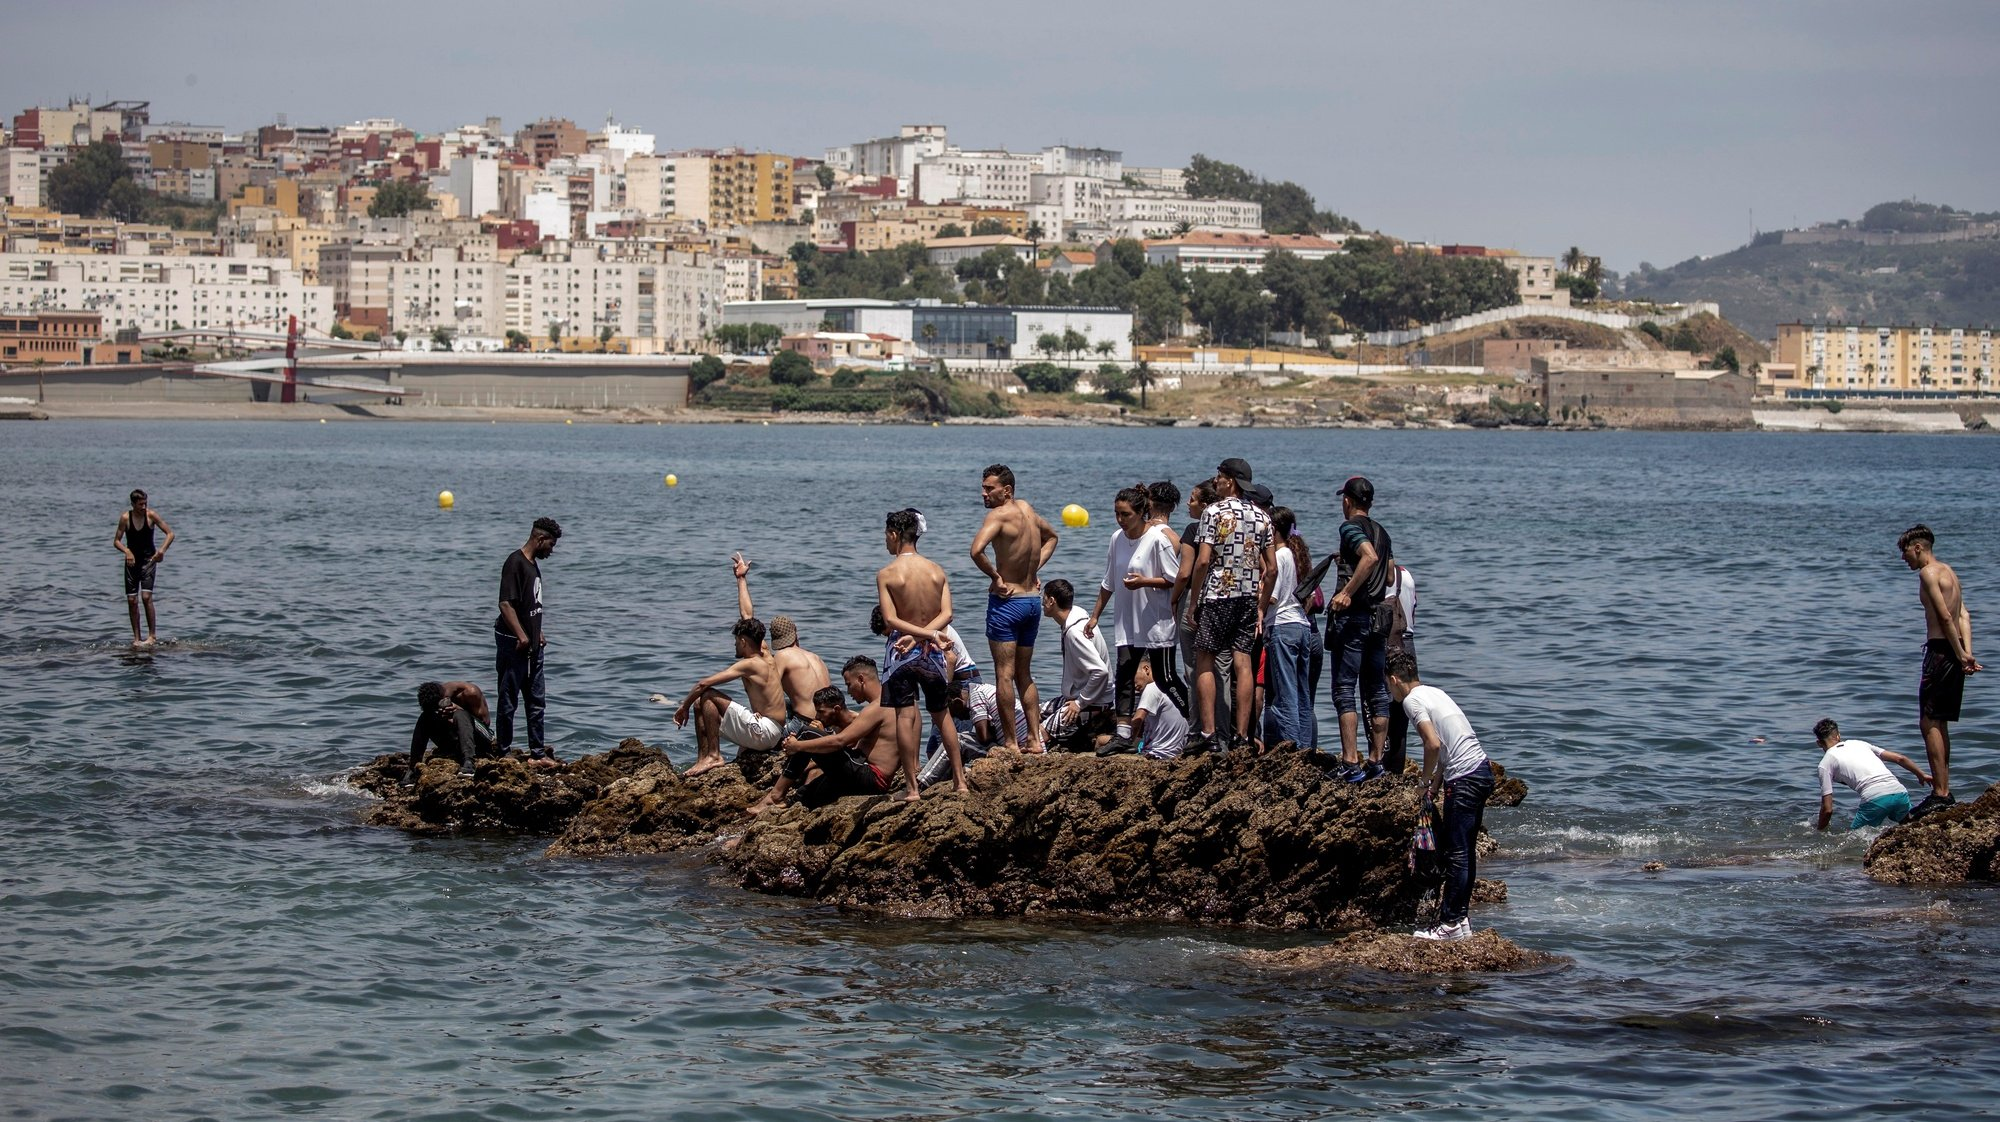 epa09209430 Migrants arrive swimming to cross the border of Tarajal in Ceuta, Spain, 18 May 2021. On the night of 17 May, a total of 5,000 Moroccan nationals entered into the Spanish city of Ceuta, loacted in the North African coast, by sea side and hundreds of migrants continue to attempt doing so. The Spanish authorities have deployed the army to patrol on the border separating Ceuta in the Spanish side from the Moroccan side, in a bid to control this latest surge of entry attempts.  EPA/BRAIS LORENZO